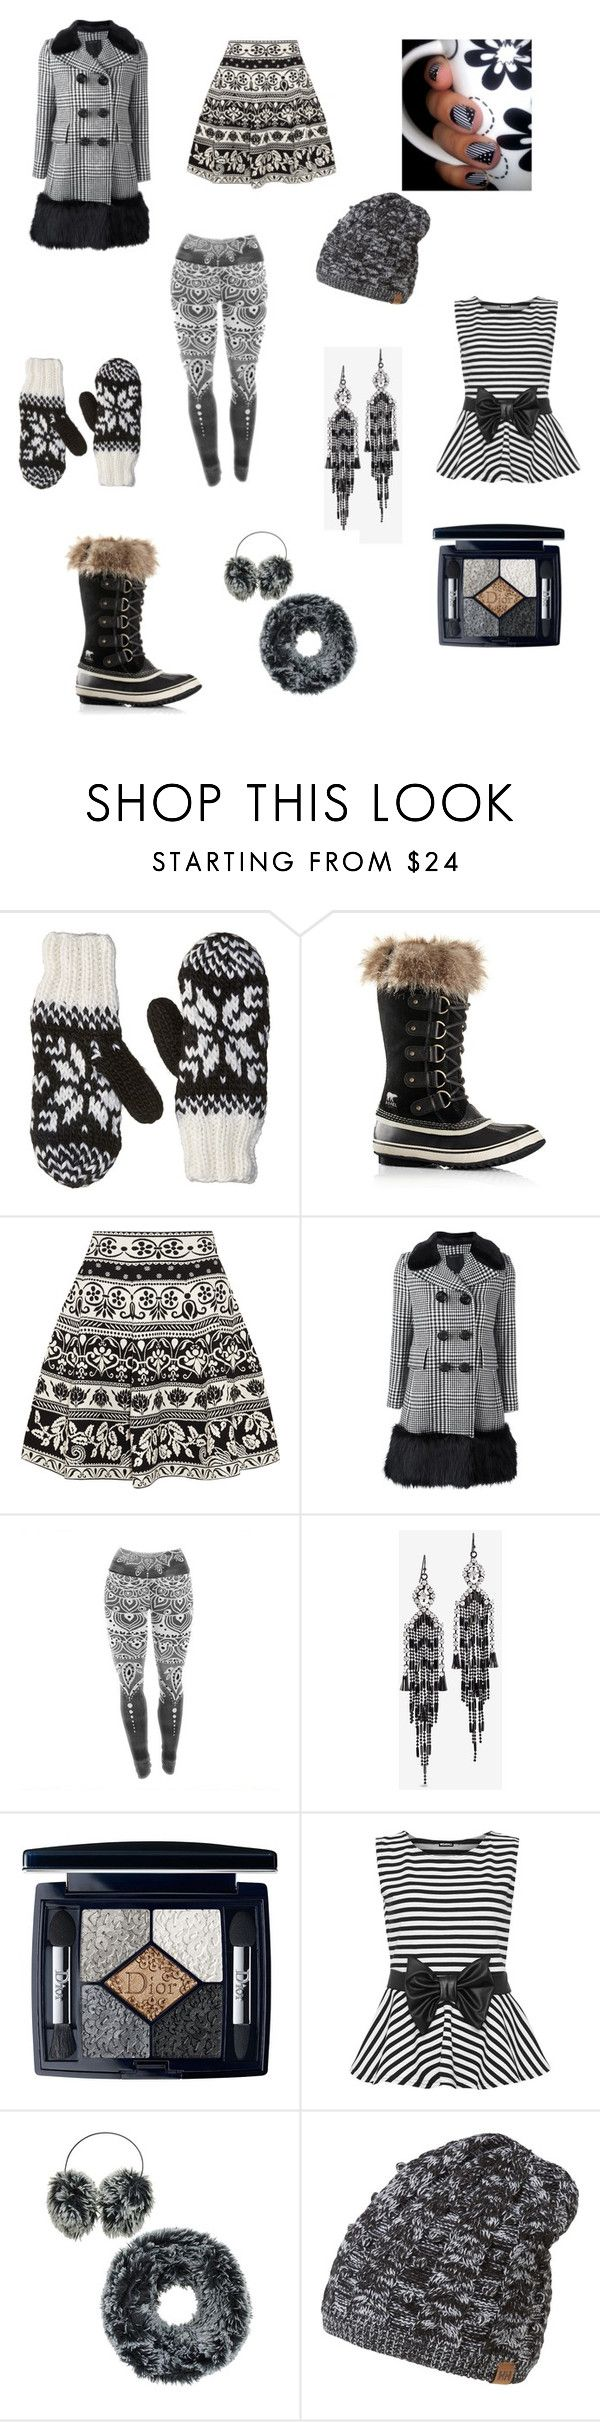 """""""Black and White winter outfit"""" by rbugybug ❤ liked on Polyvore featuring Bula, SOREL, Alexander McQueen, Marc Jacobs, White House Black Market, Christian Dior, WearAll and Helly Hansen"""